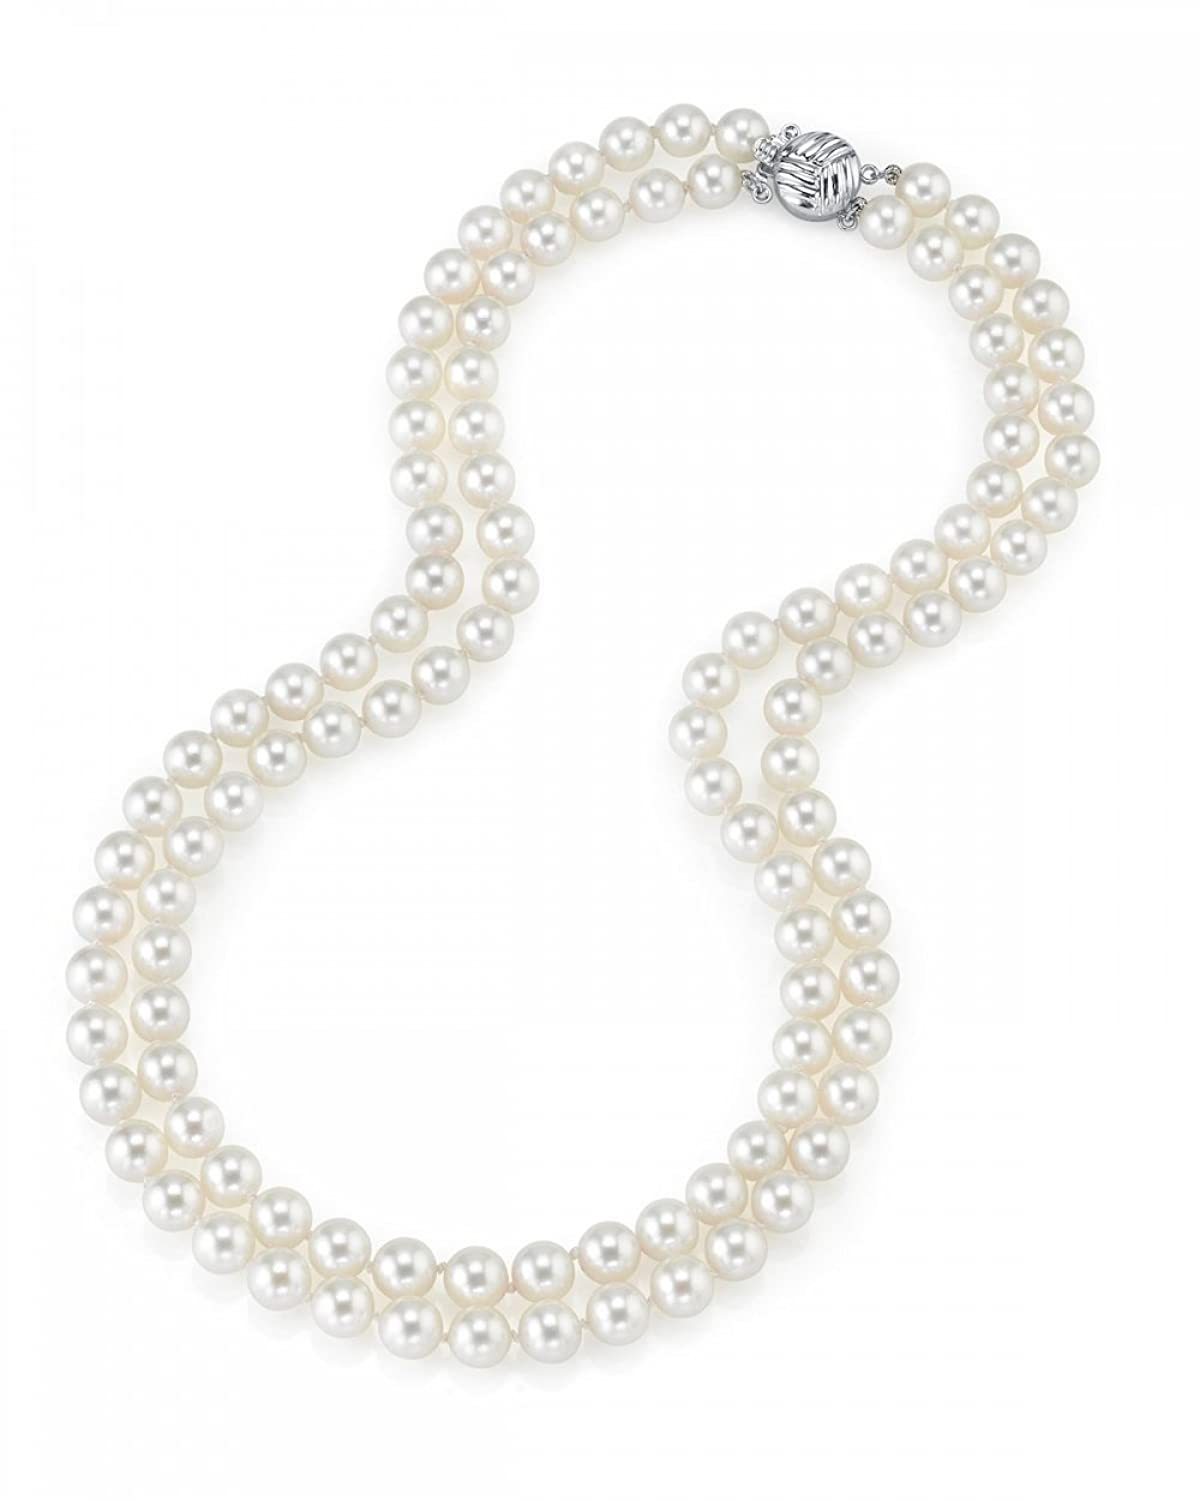 "14K Gold 7-8mm Double Strand White Freshwater Cultured Pearl Necklace, 24-25""Length"